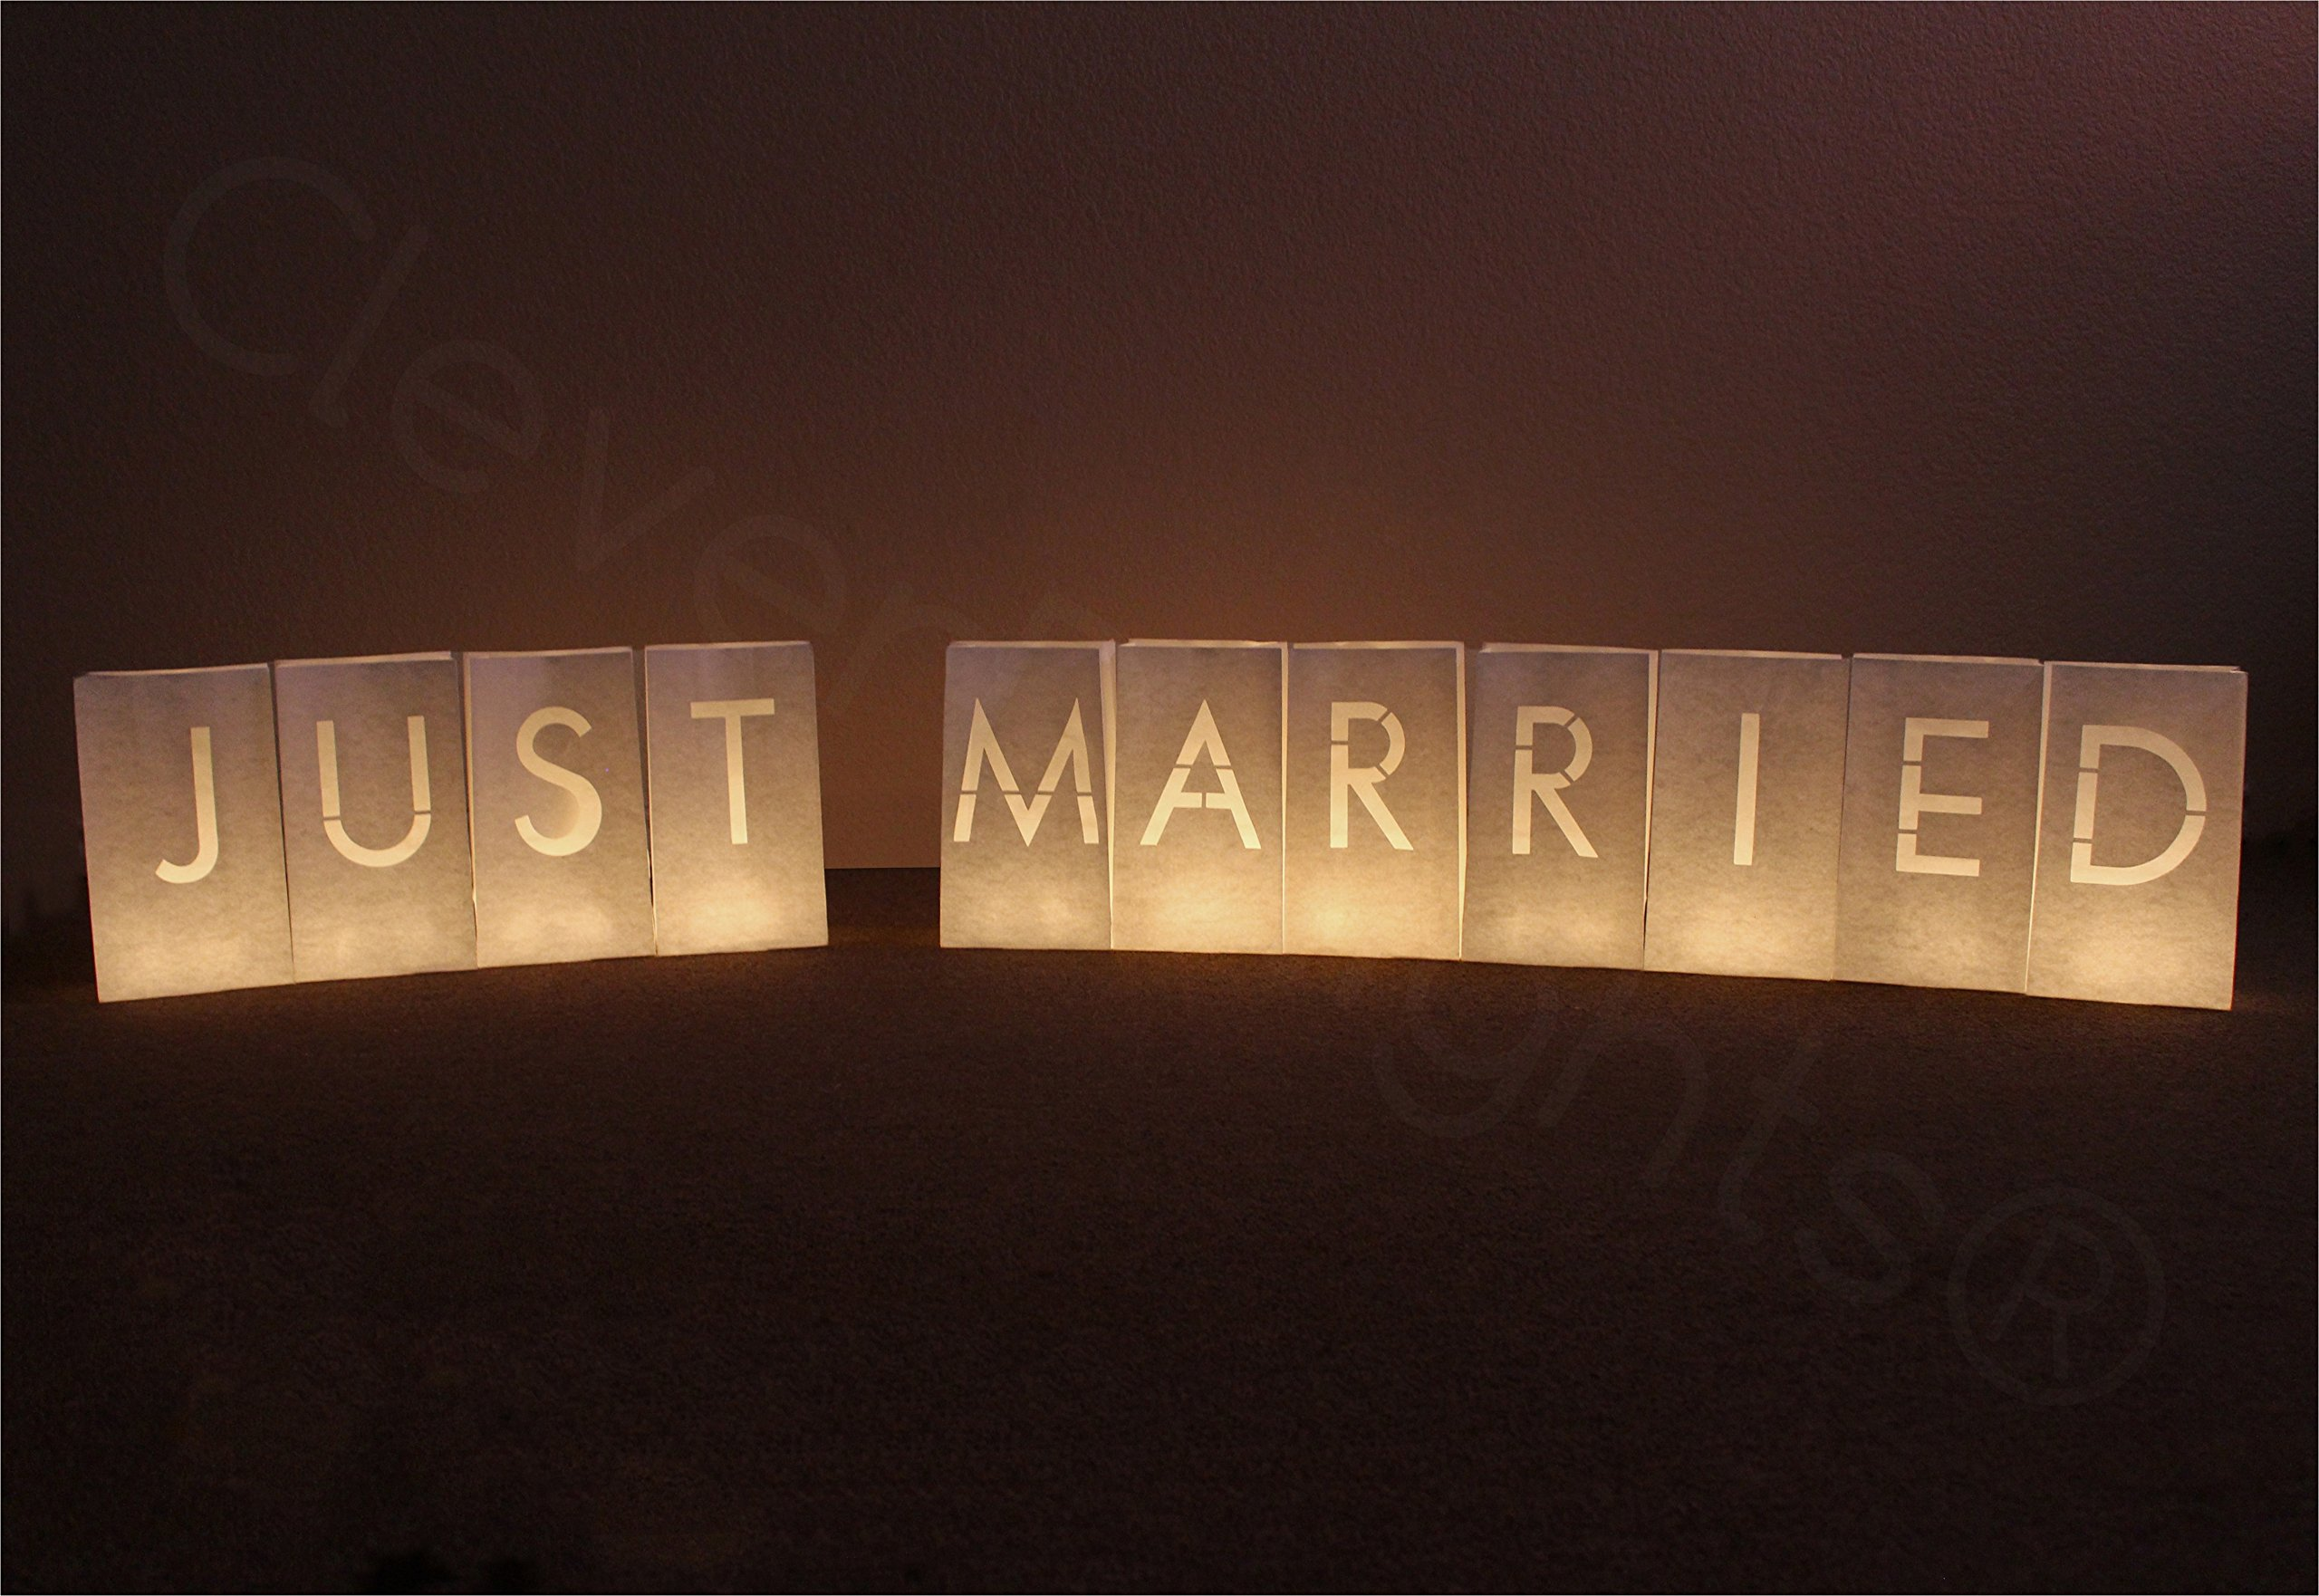 CleverDelights White Luminary Bags - Just Married - 22 Bags (2 Full Sets) - Flame Resistant Candle Bag by CleverDelights